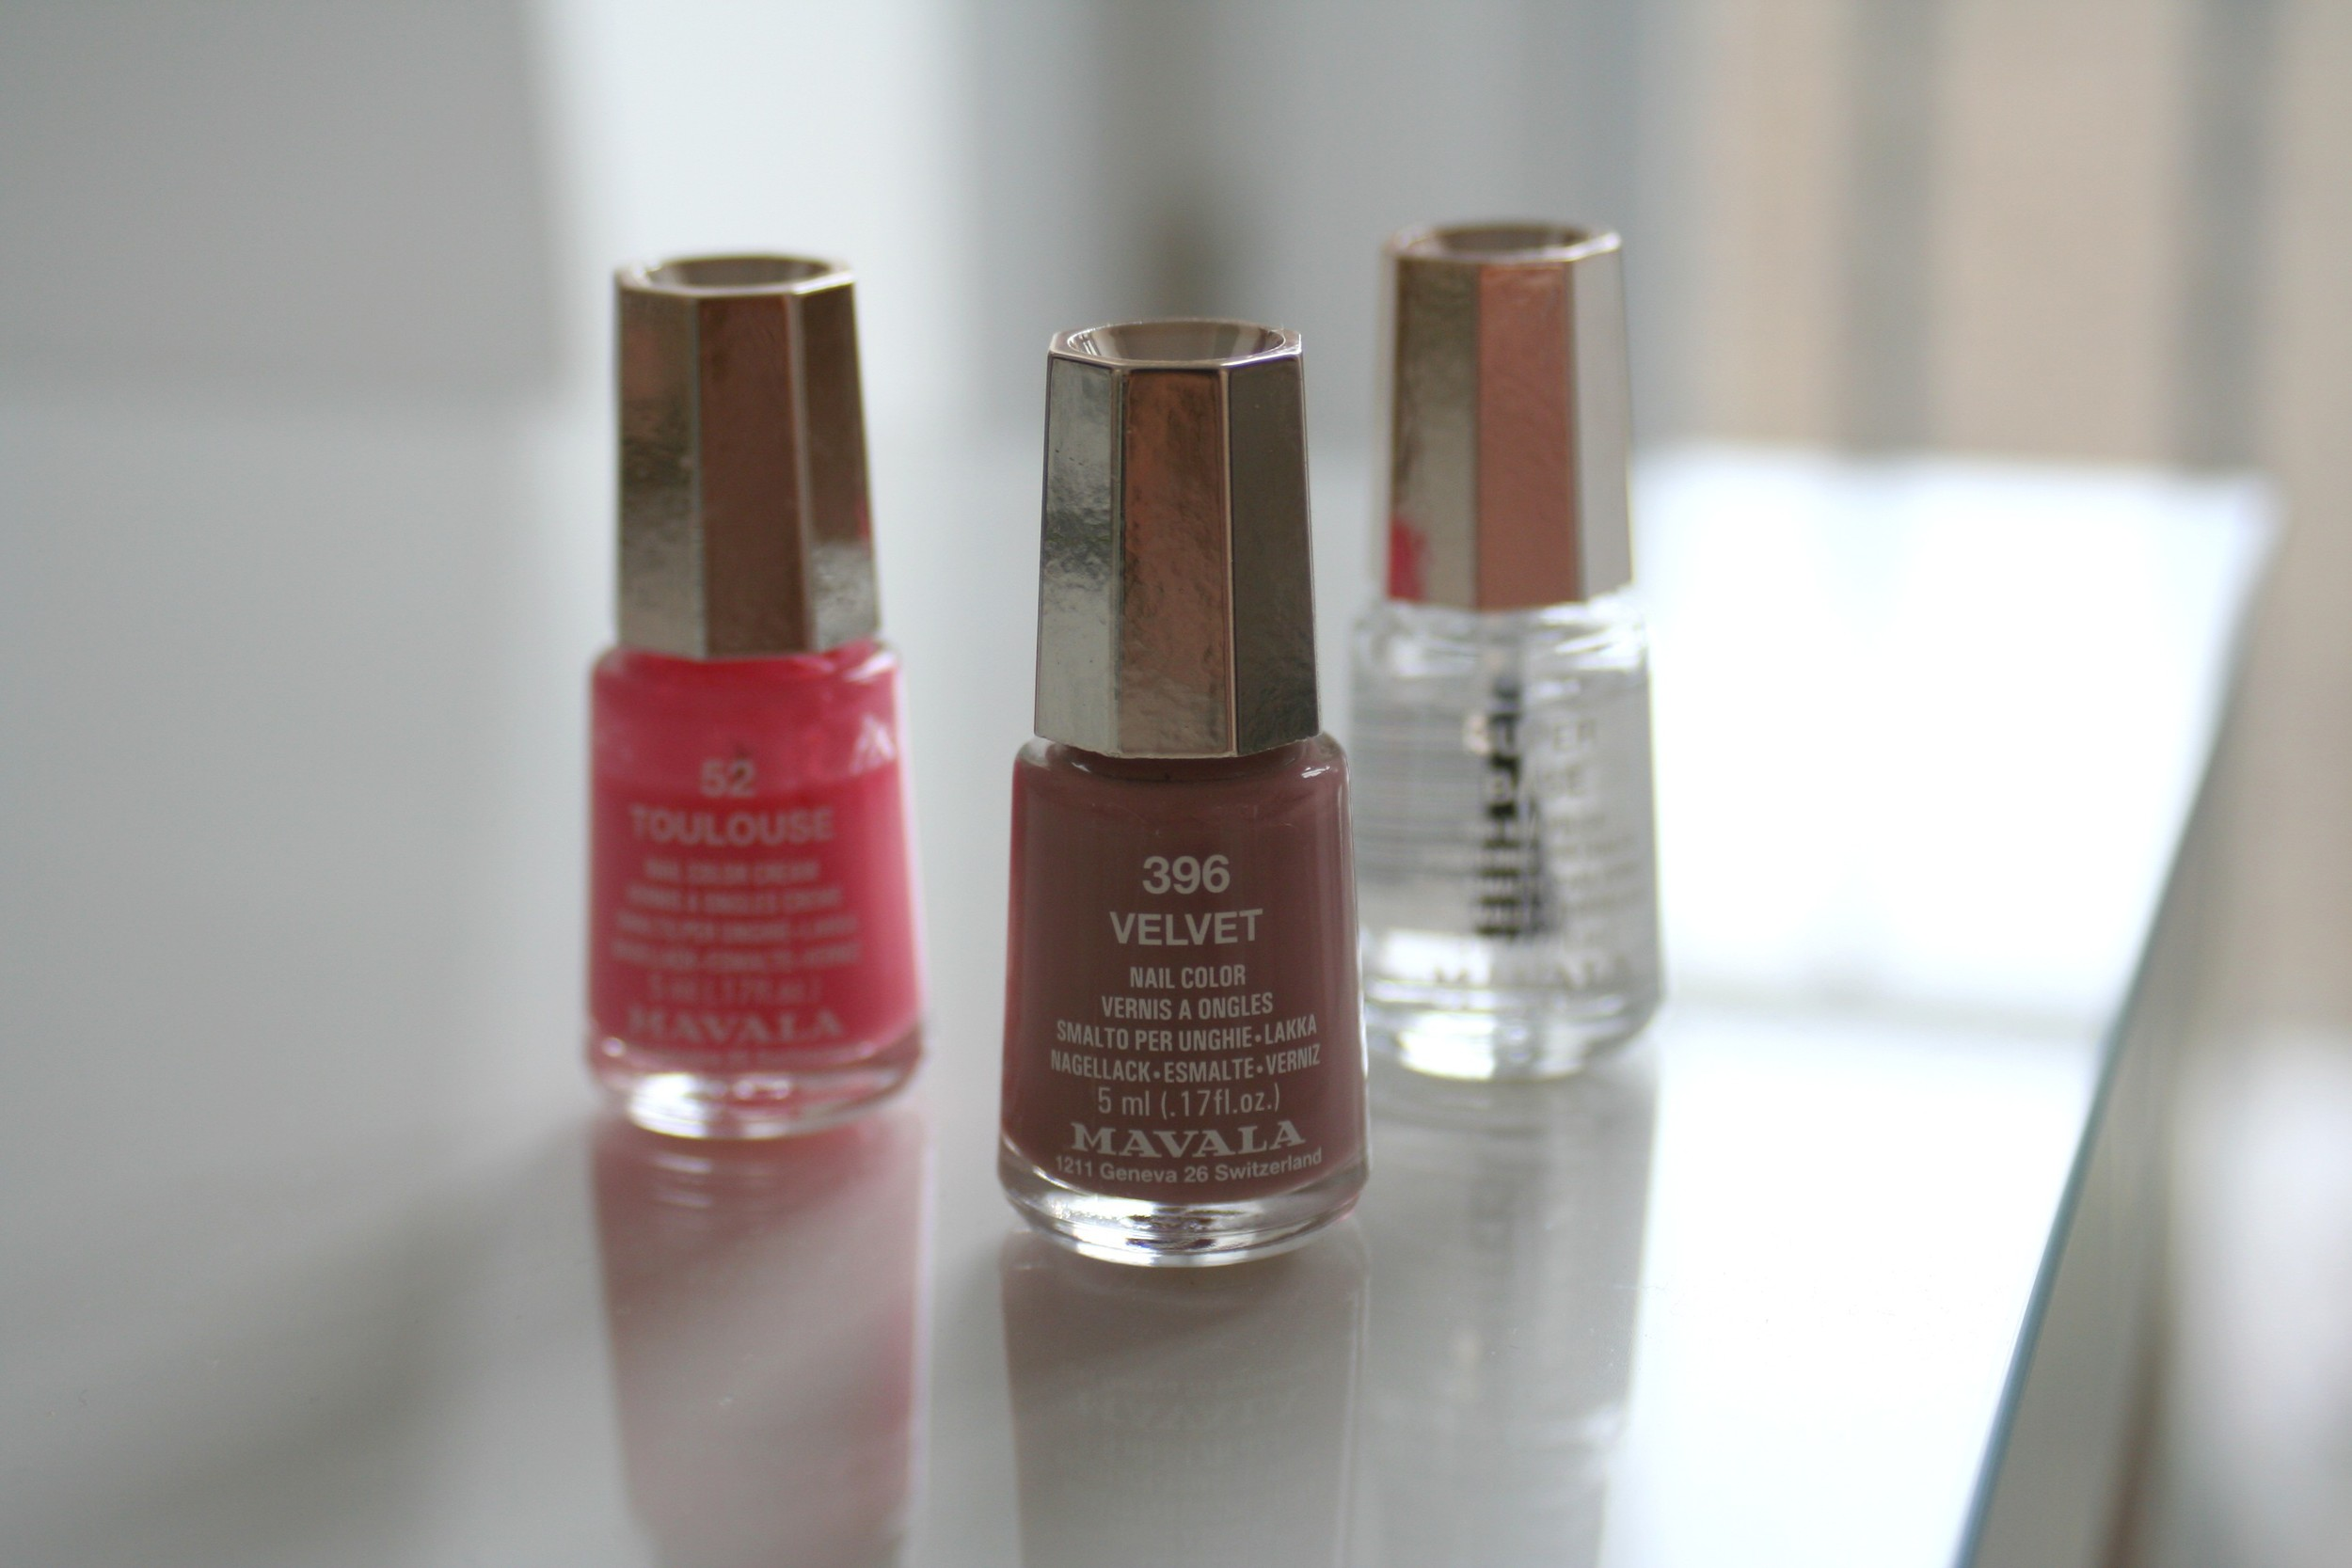 Mavala polishes in 'Toulouse' and 'Velvet' along with their base coat 'Super Base'